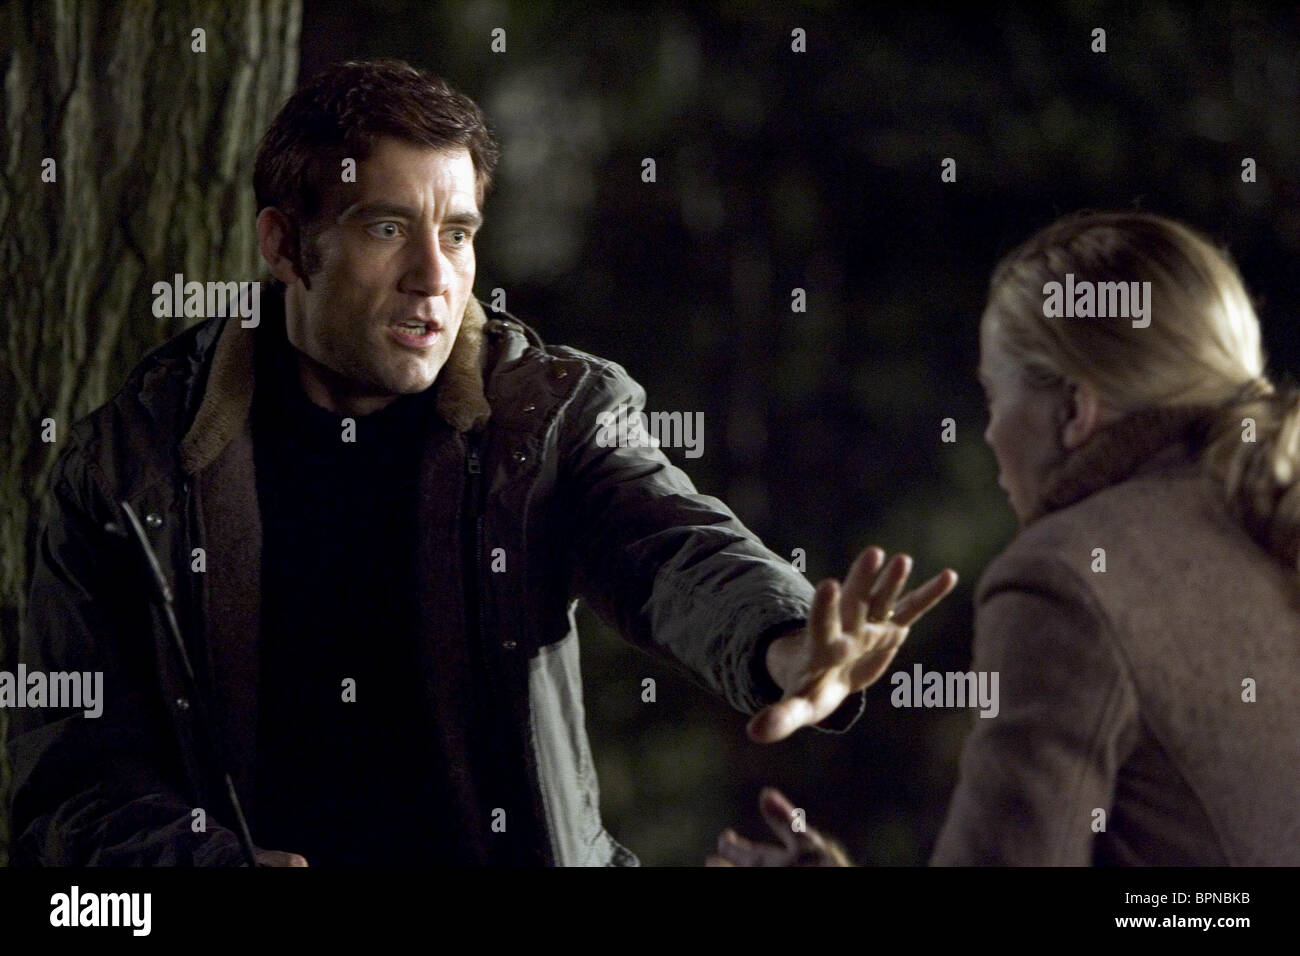 CLIVE OWEN DERAILED (2005) - Stock Image